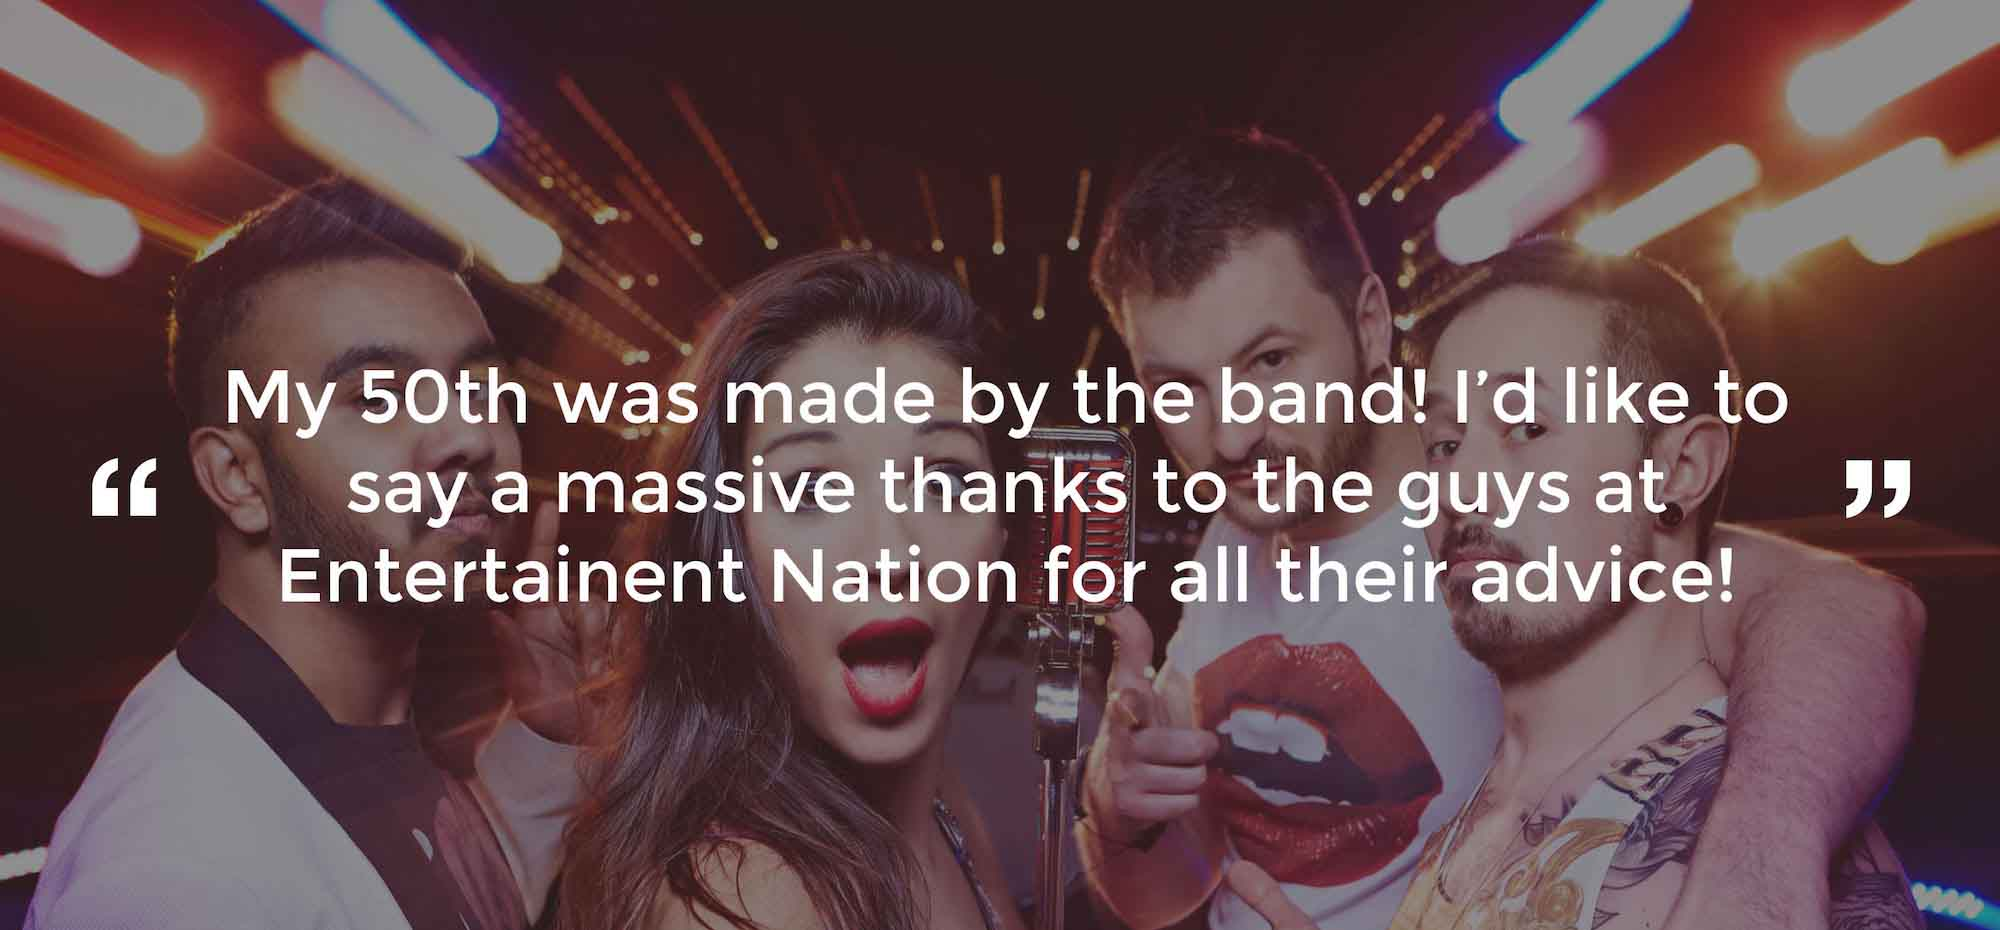 Client Review of a Party Band North Yorkshire